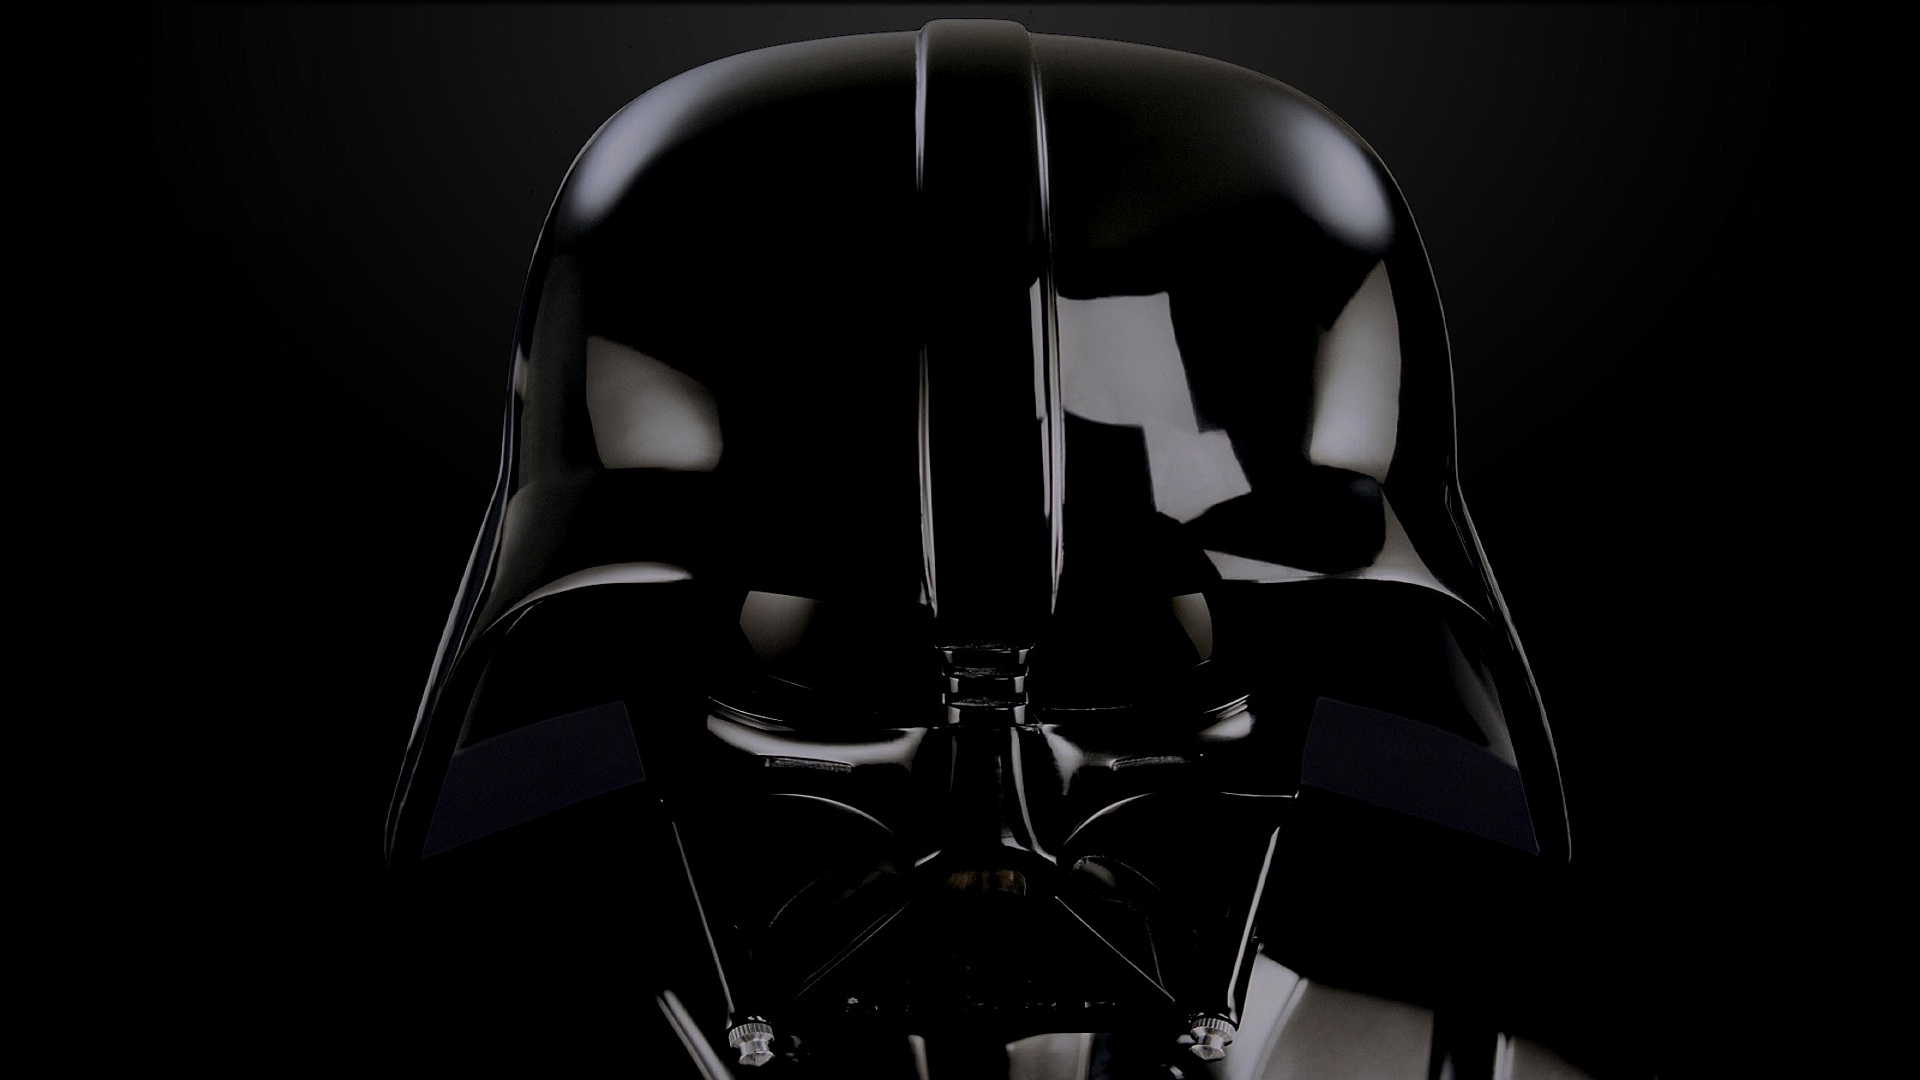 Darth Vader in the Darkness Wallpapers